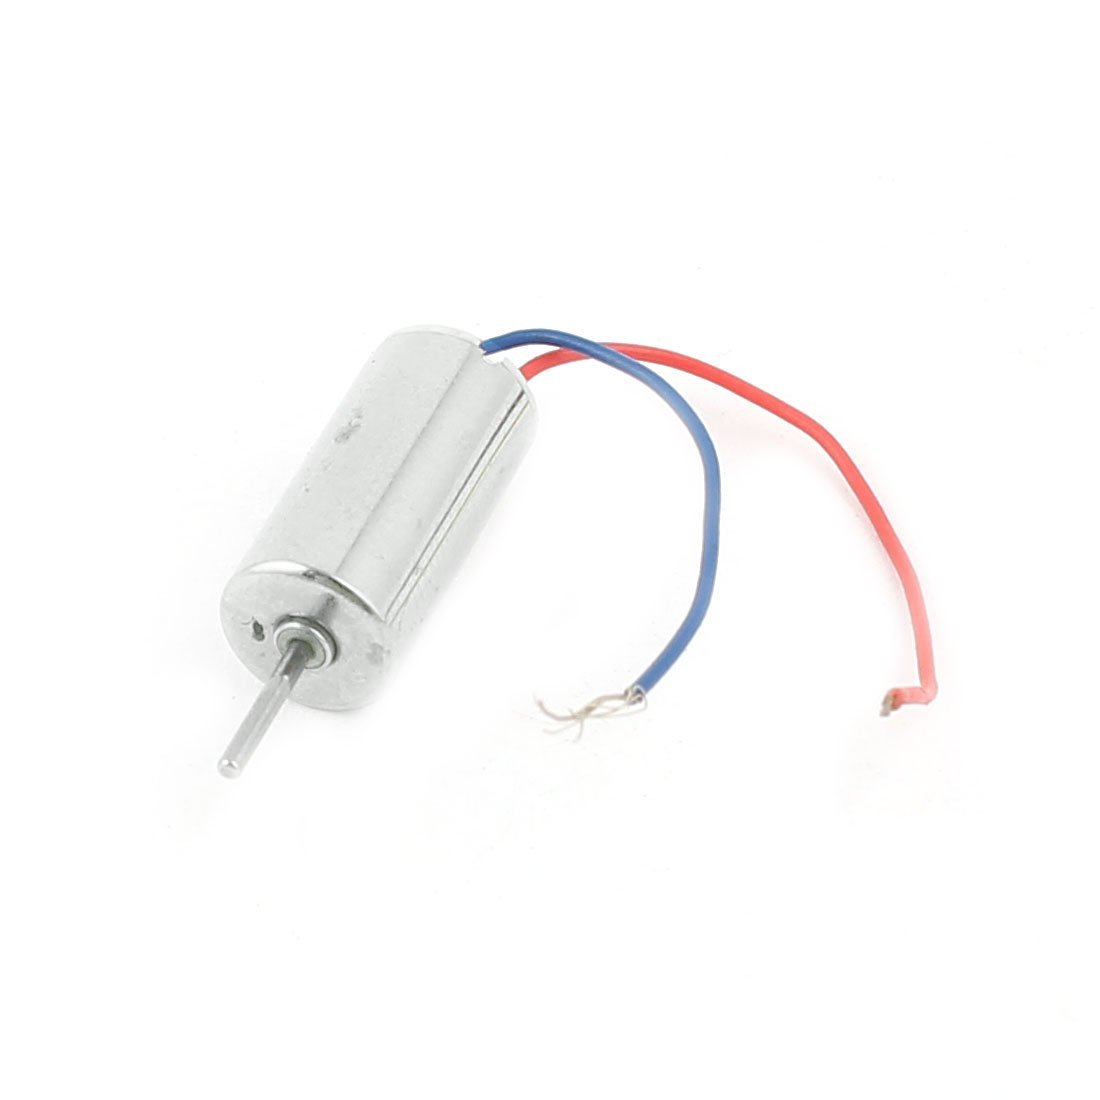 Uxcell 44273RPM Rotary Speed 1.5-4.5V Voltage DC Coreless Motor for RC Model Dragonmarts Co // Uxcell a14111200ux0282 Ltd